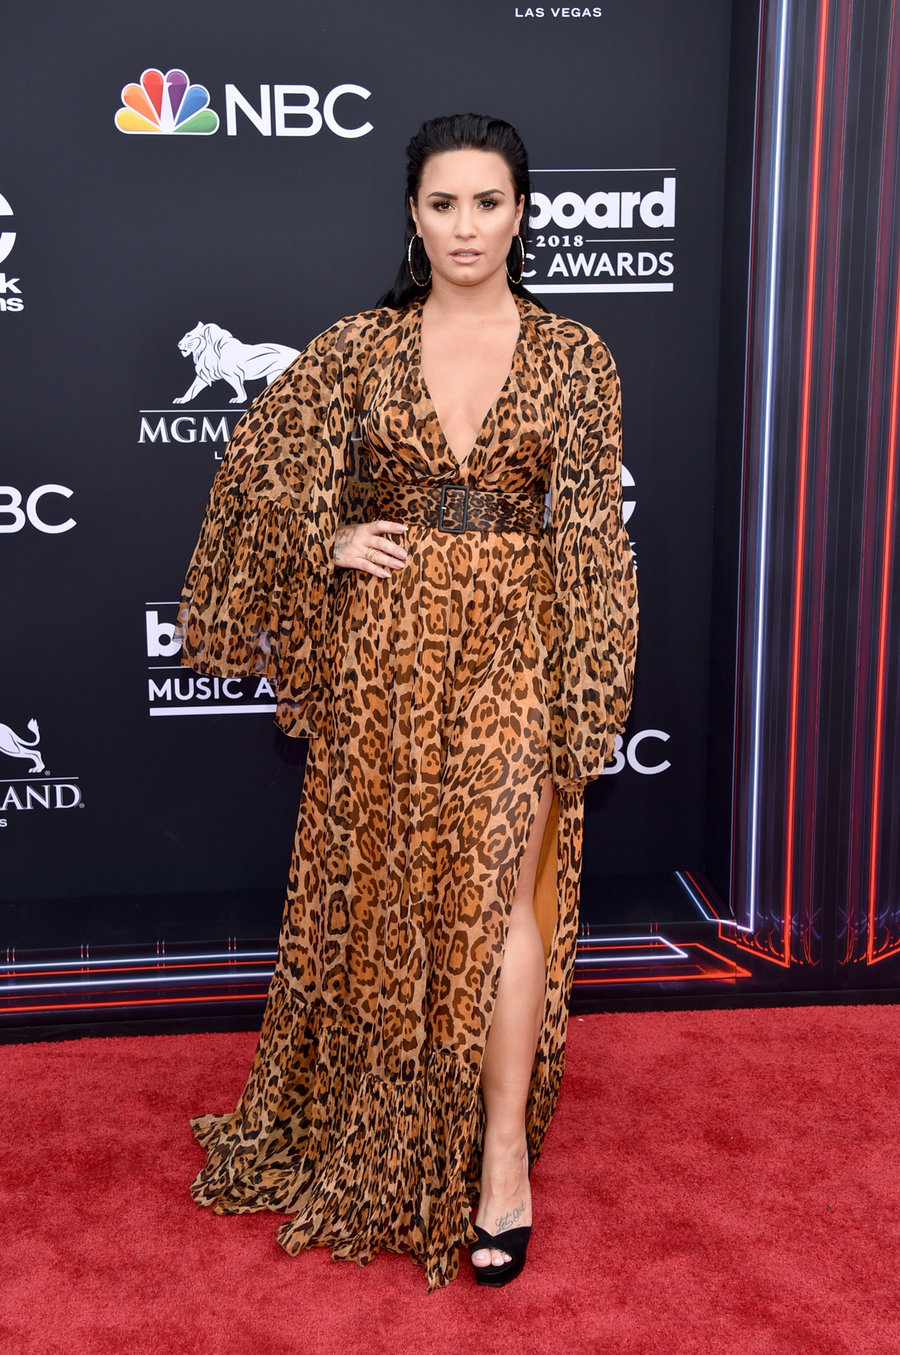 the best red carpet looks from the 2018 billboard music awards